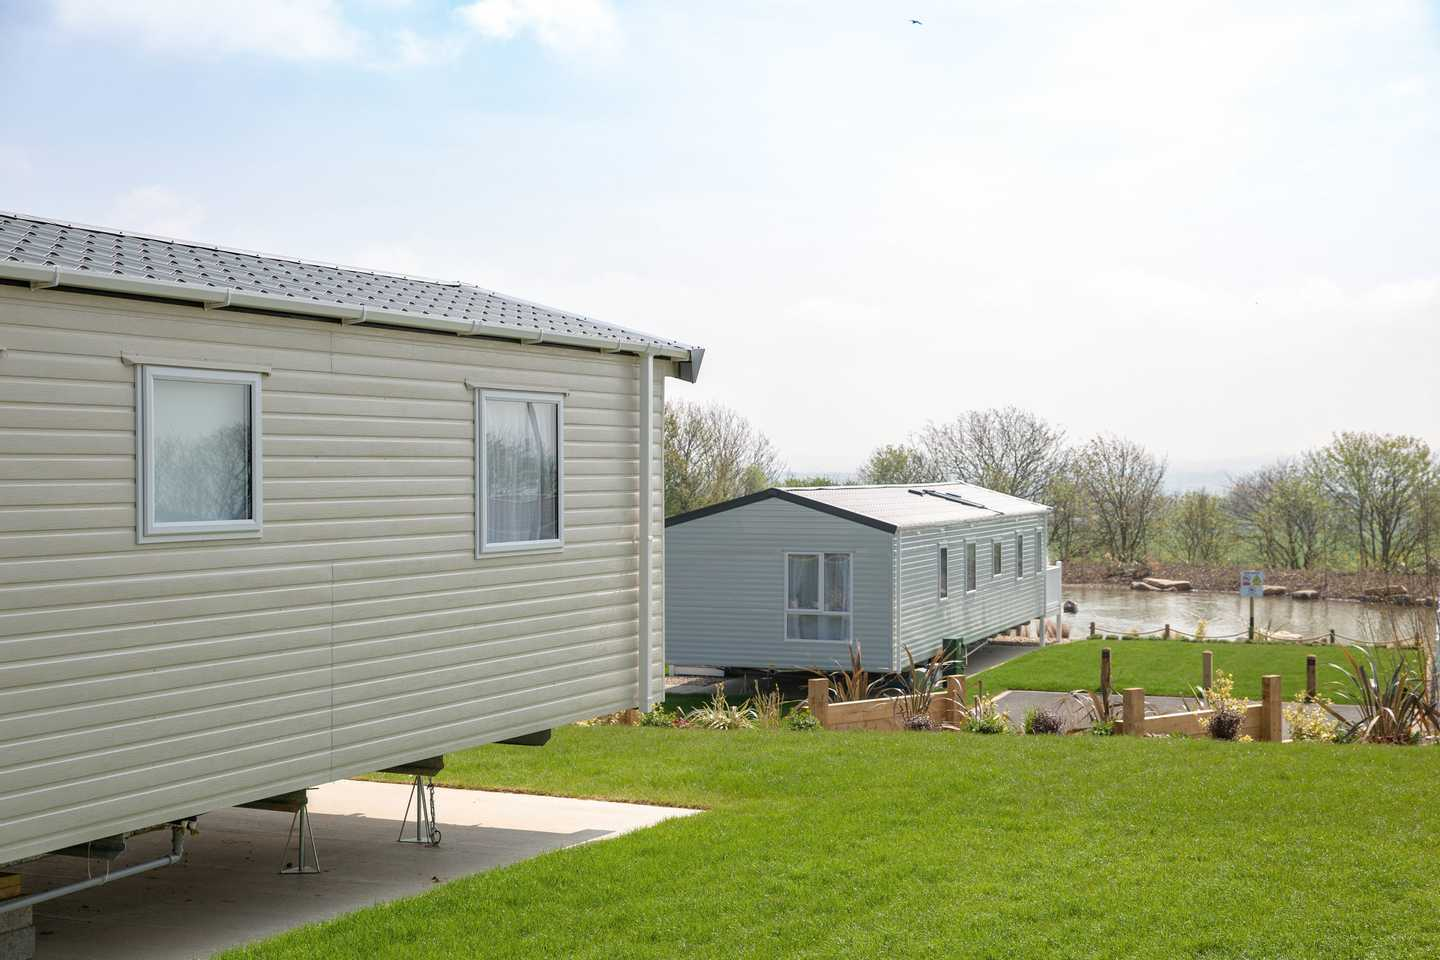 View of two Deluxe caravans and pond in background